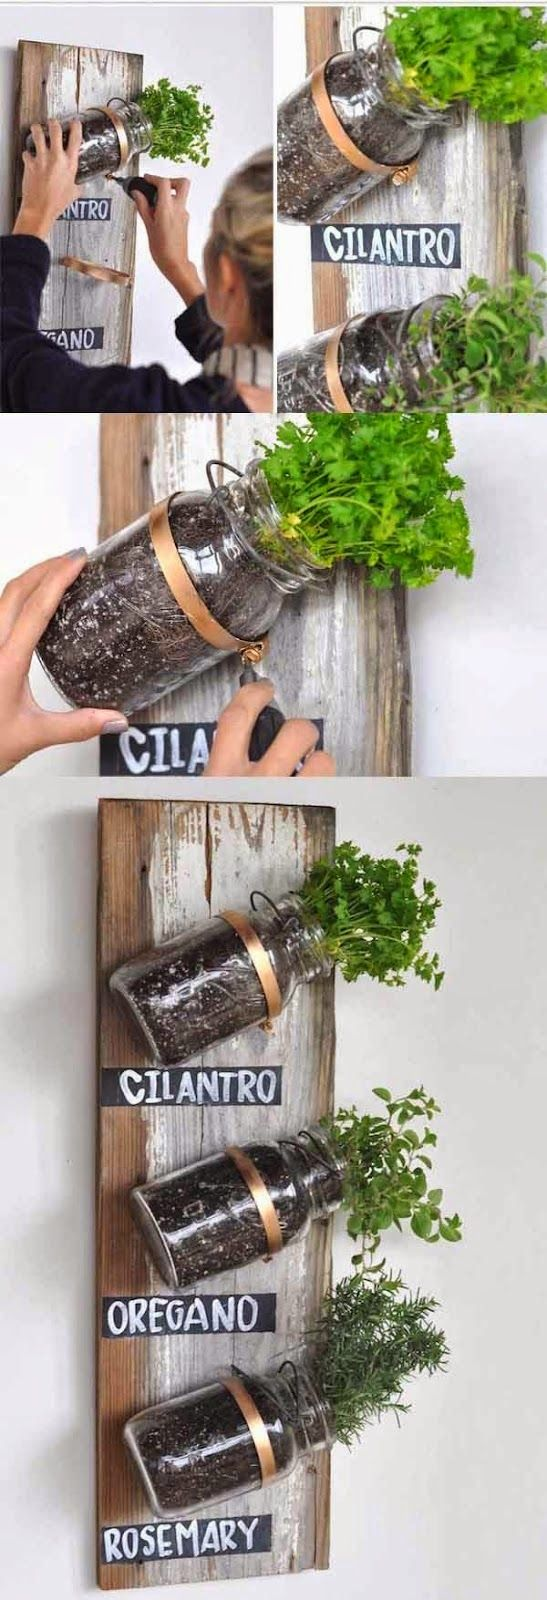 Simple Kitchen Herb Garden best 25+ patio herb gardens ideas only on pinterest | gardening